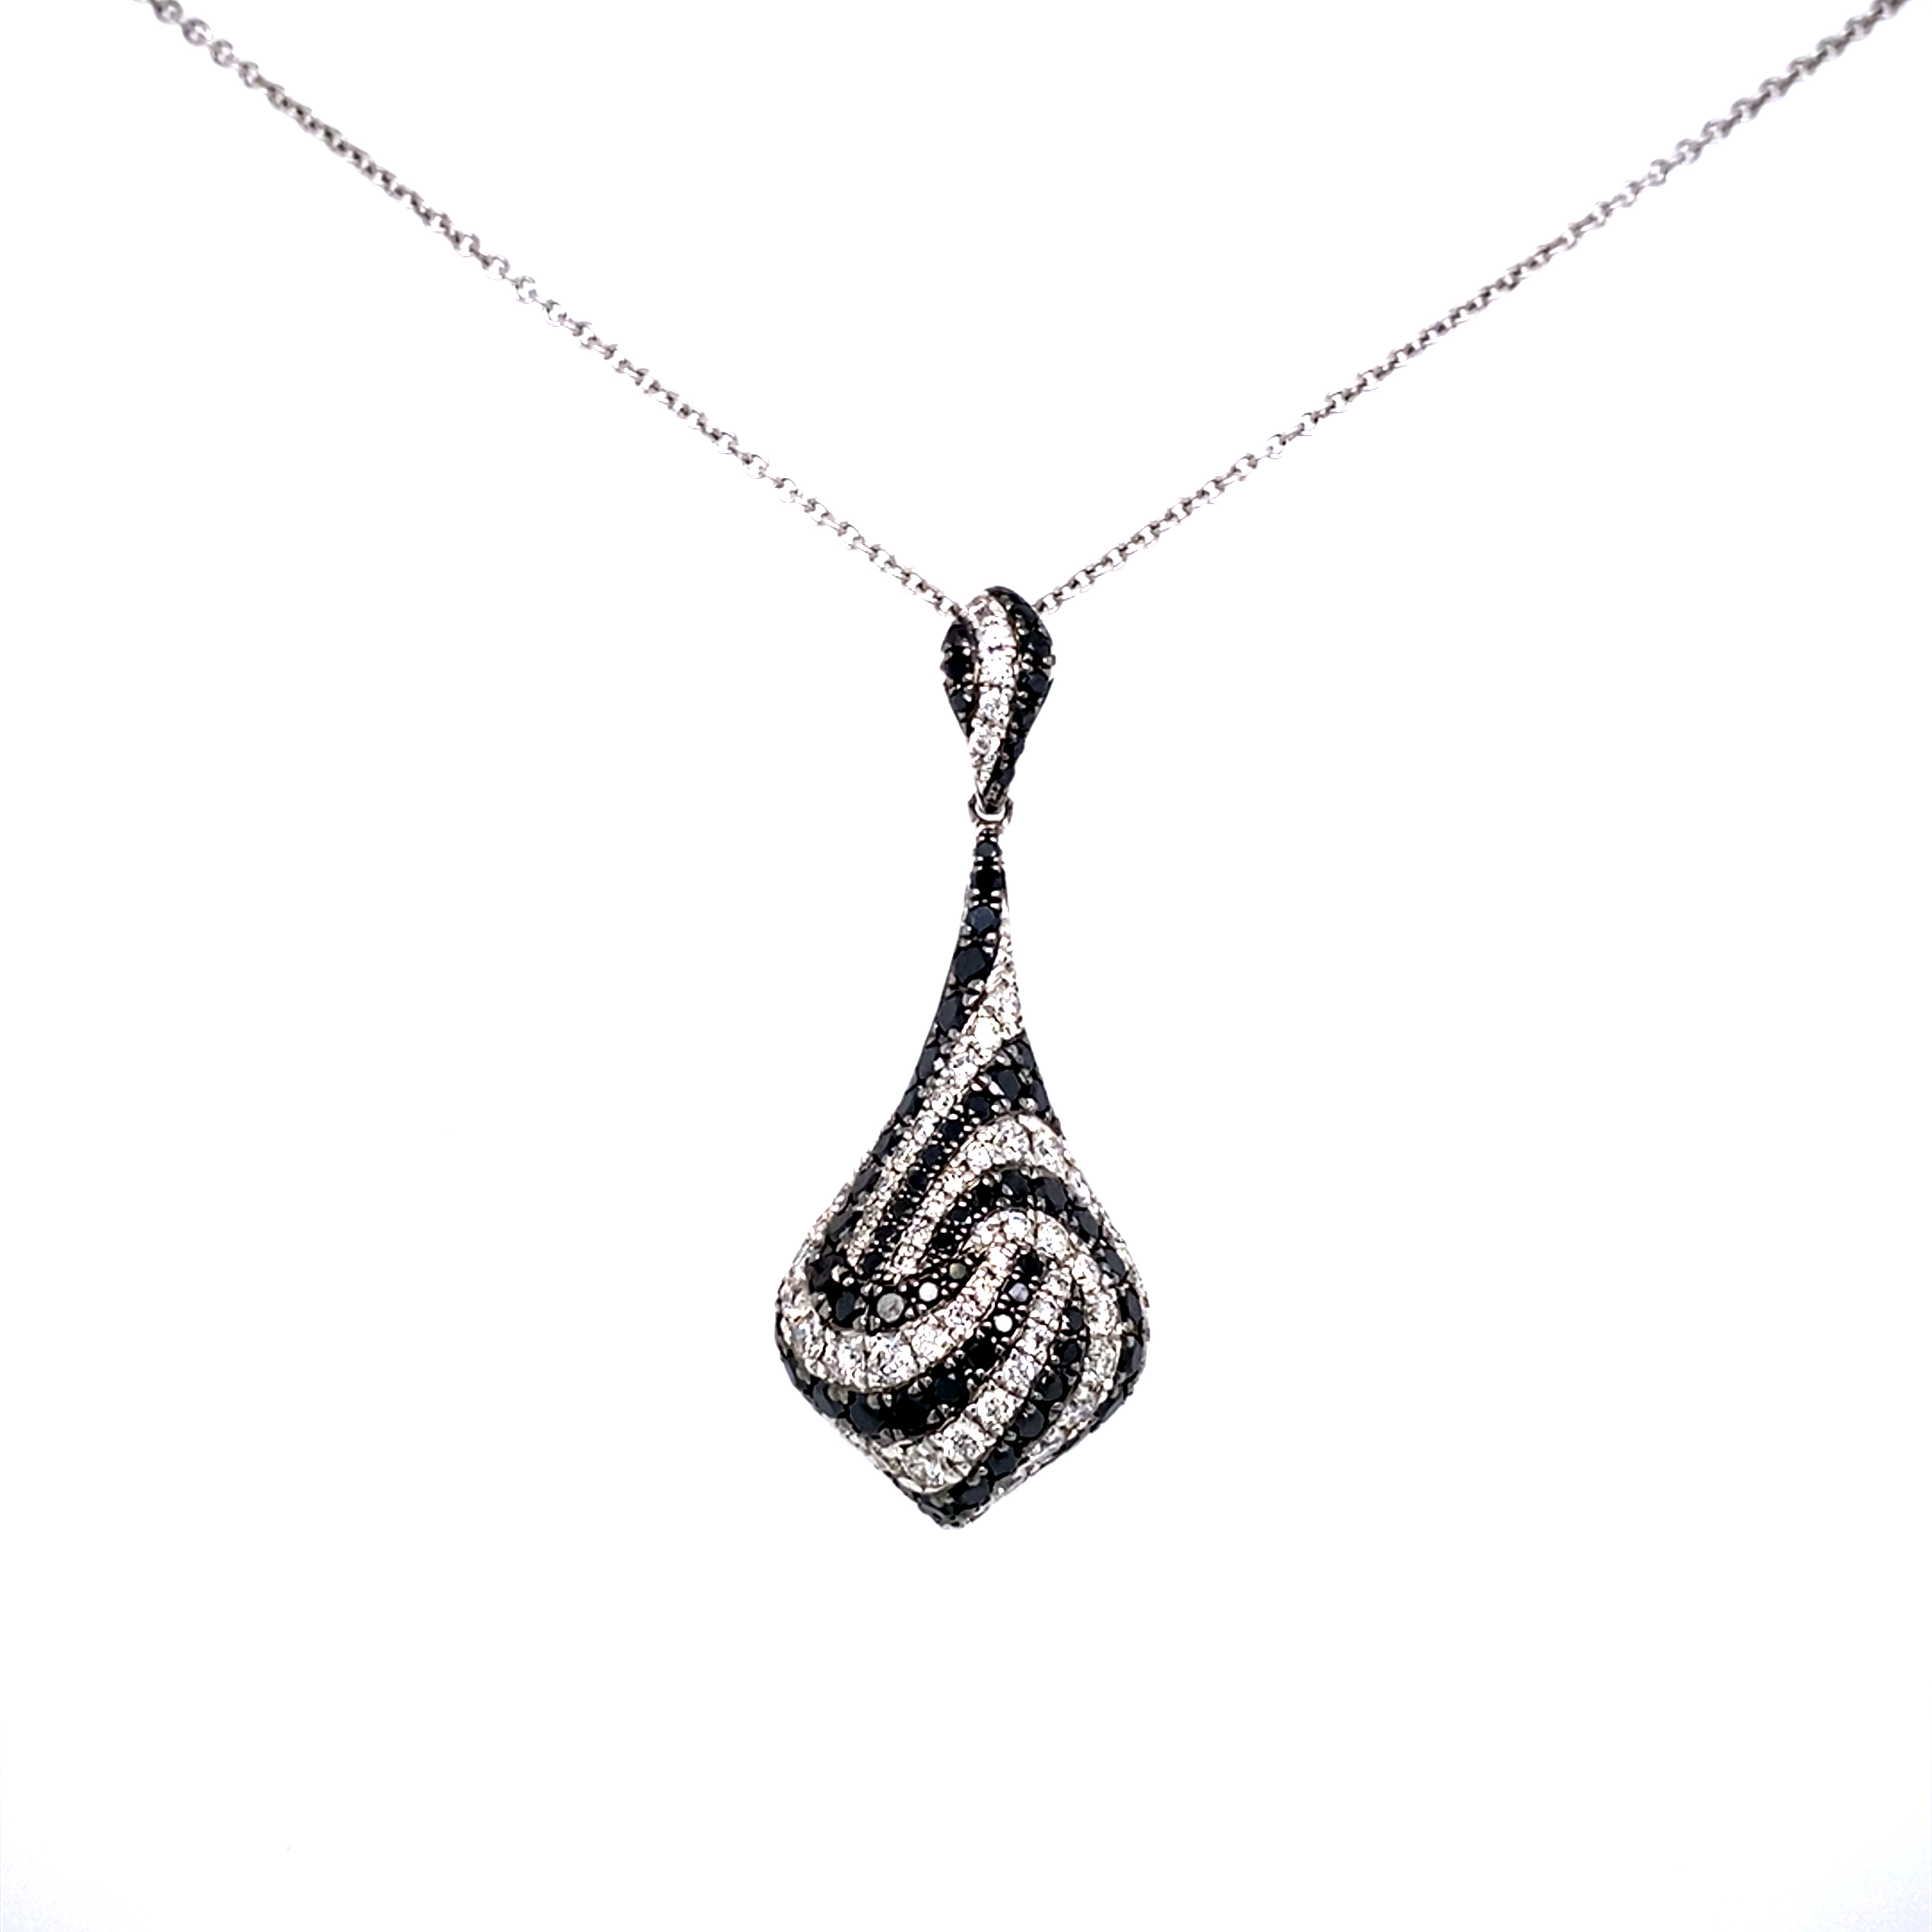 18 Carat White Gold Black and White Diamond Pendant